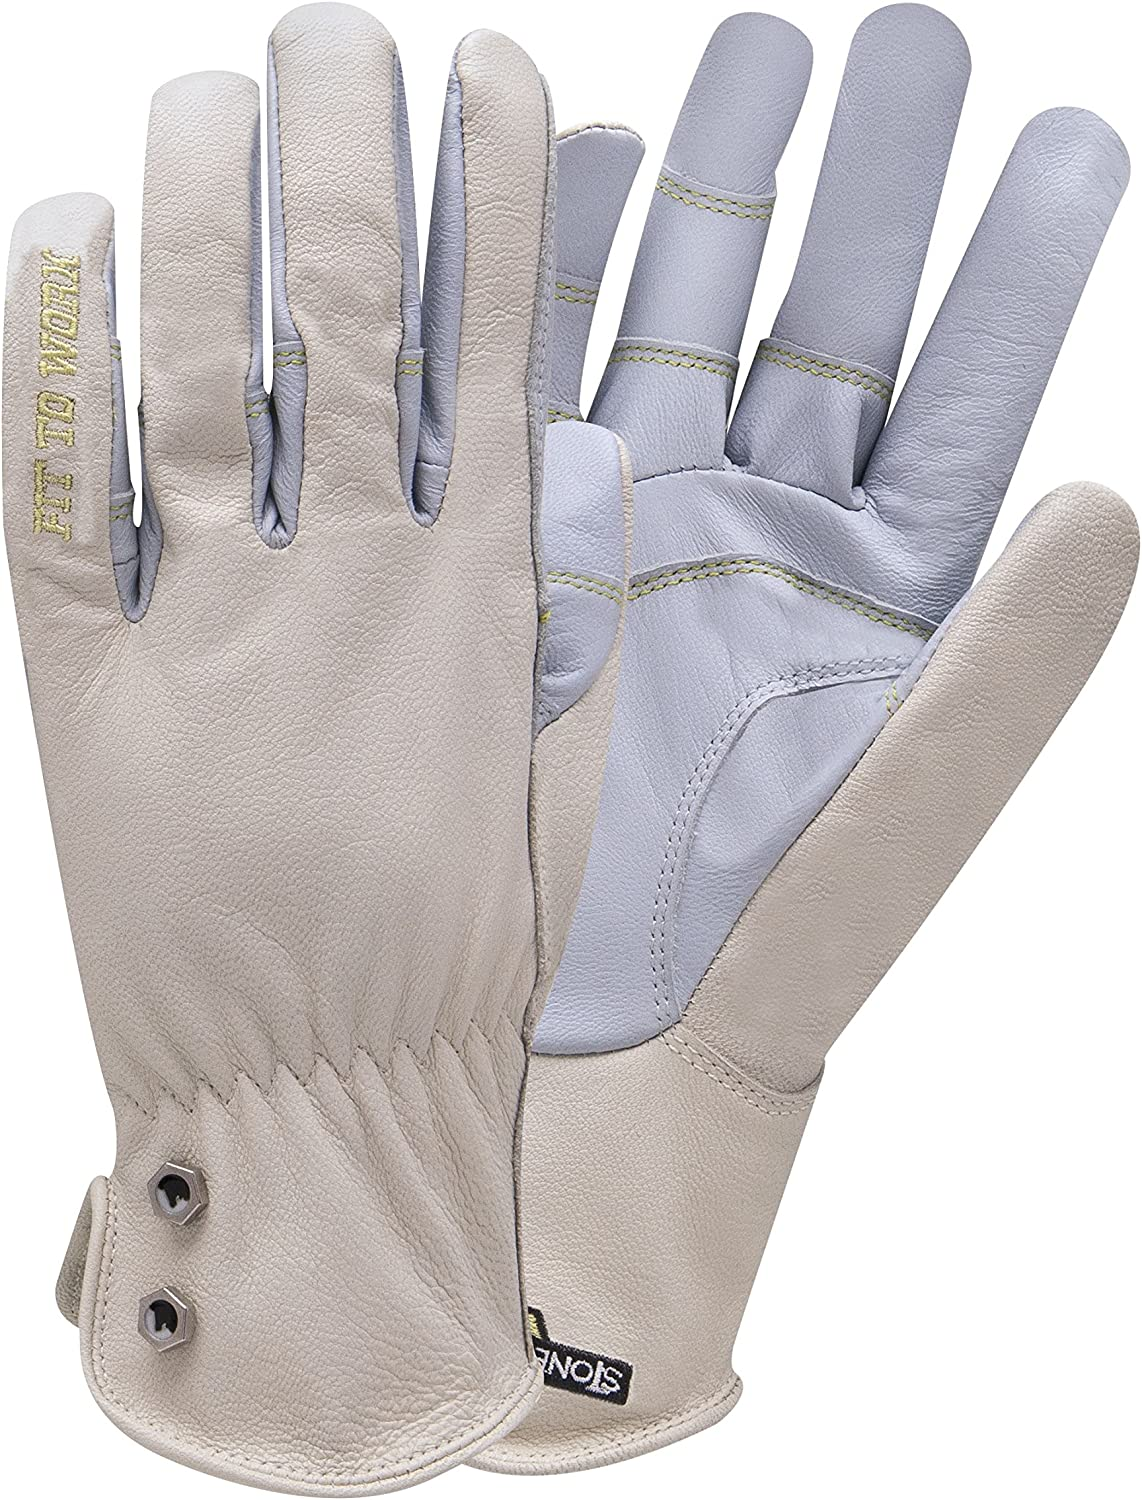 StoneBreaker Gloves Garden Pro Women's Gardening Glove, Large, Light Blue